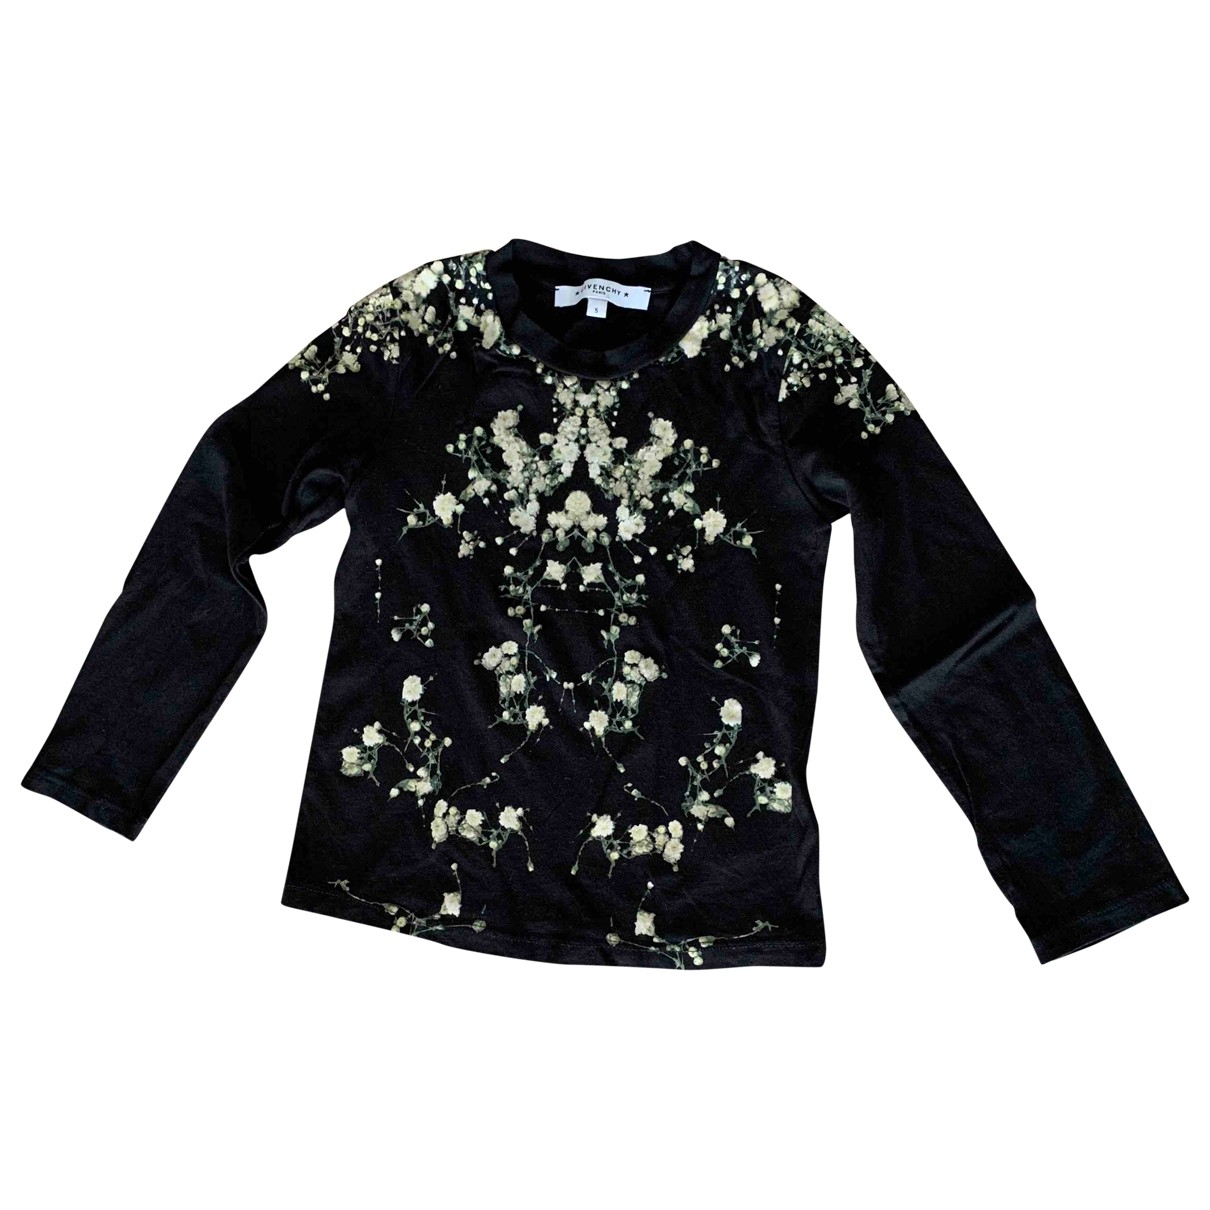 Givenchy \N Black Cotton  top for Kids 5 years - up to 108cm FR